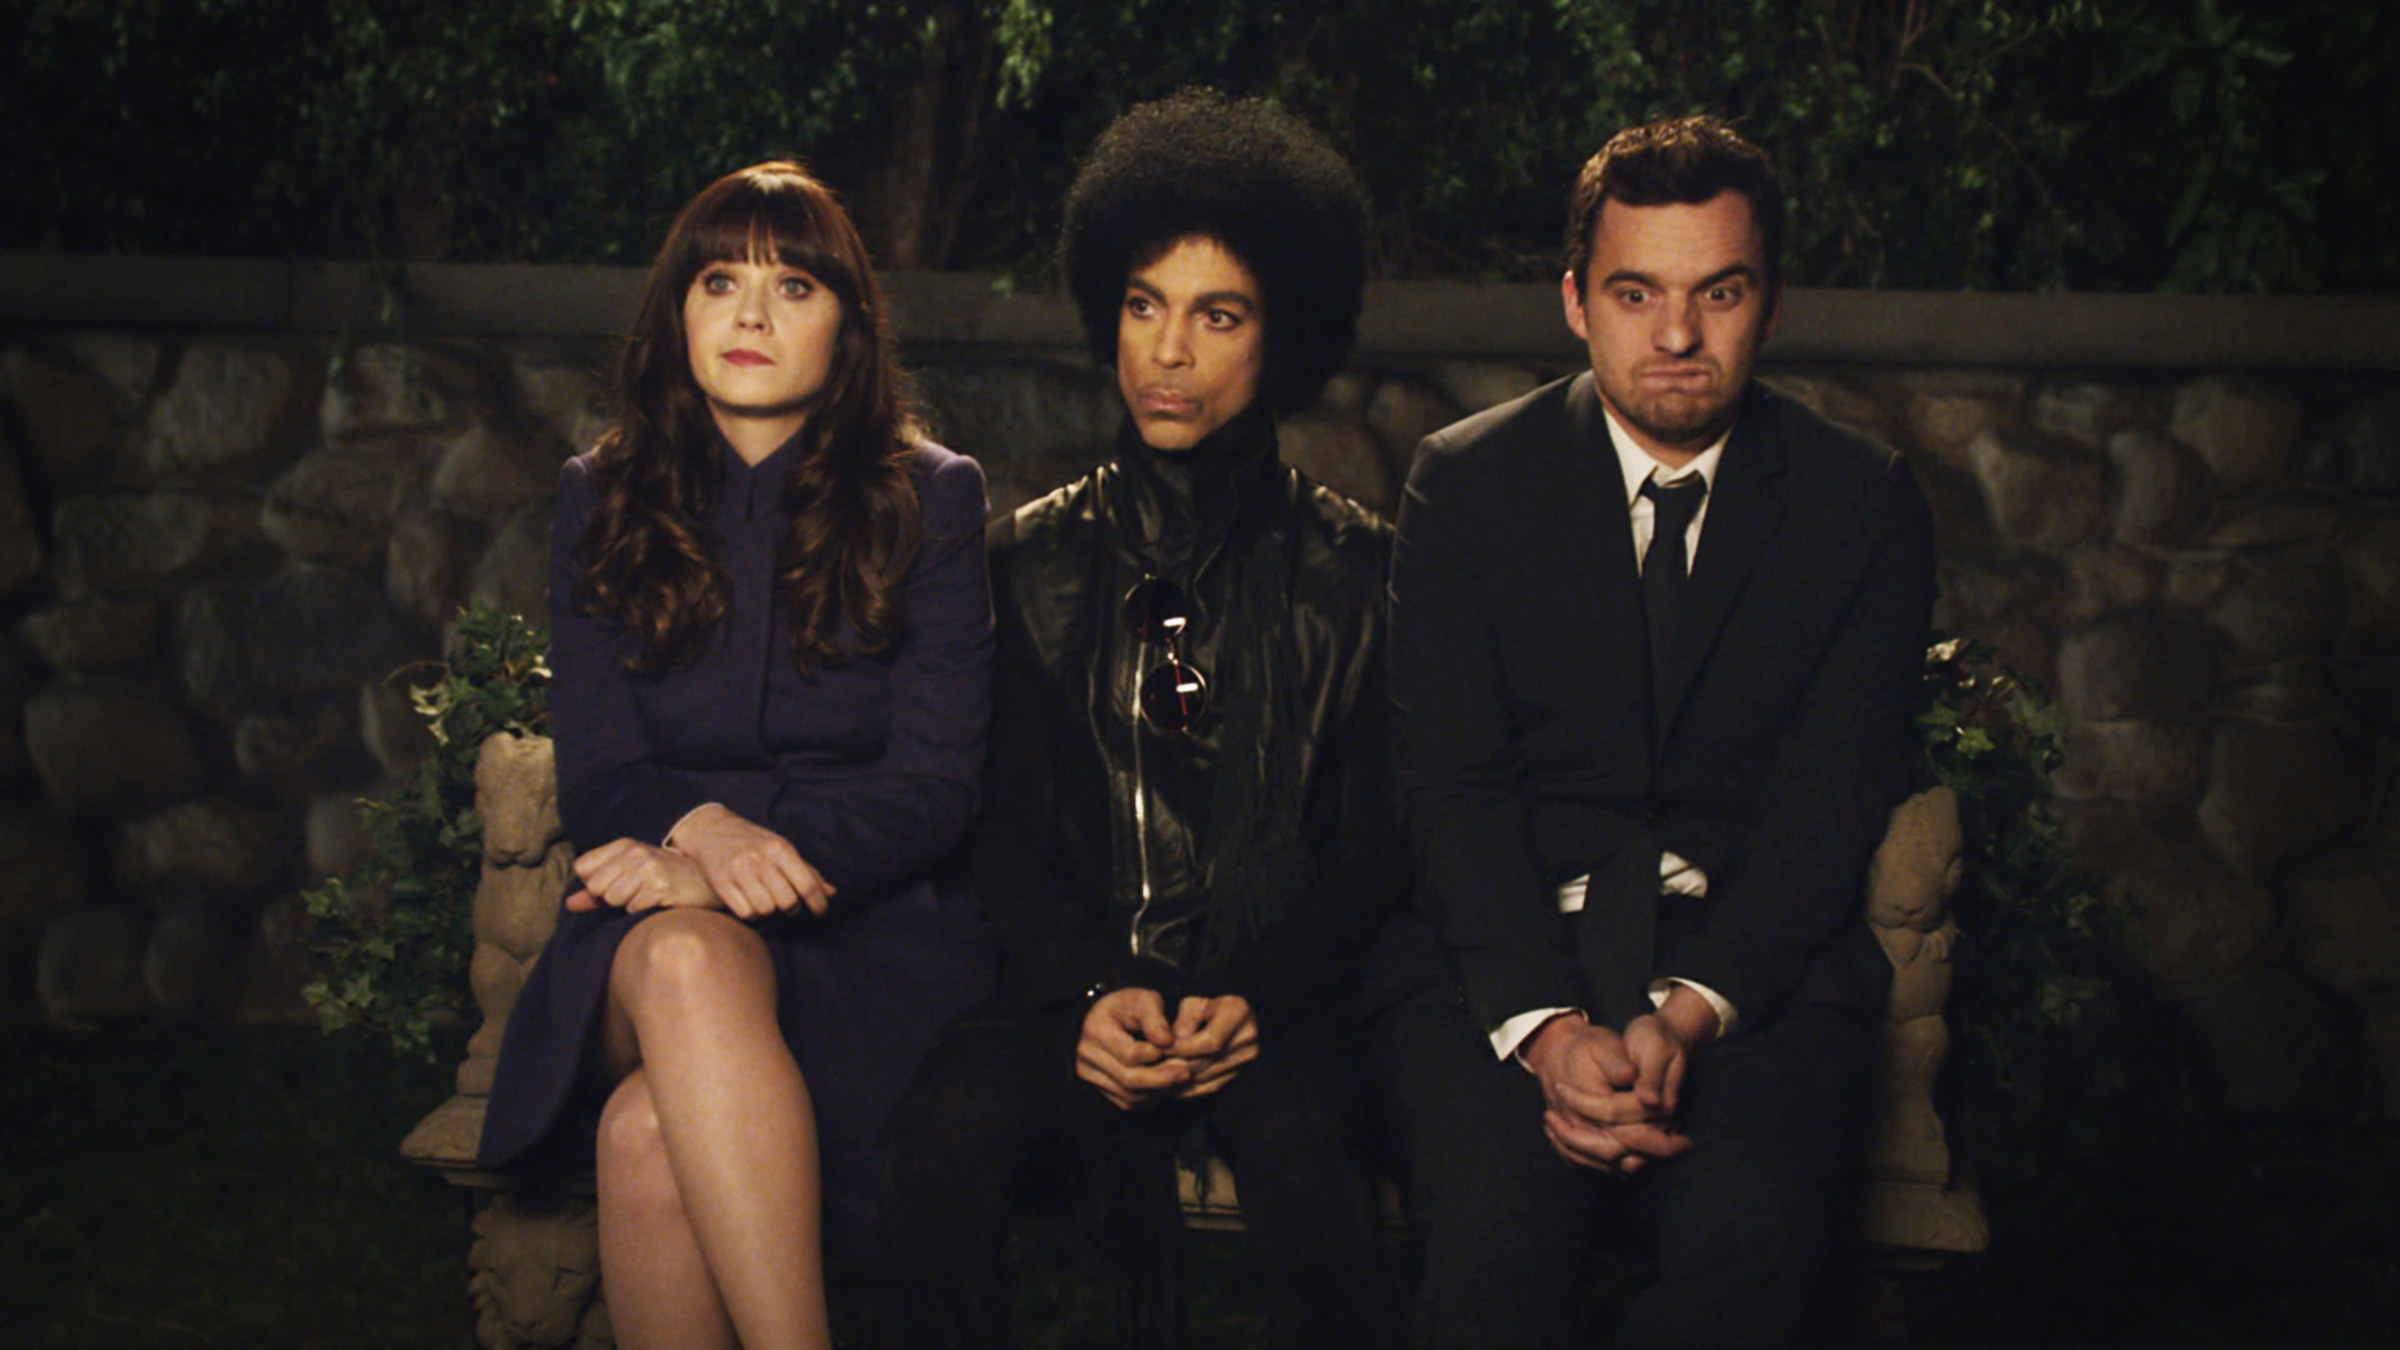 Prince sitting between Jess and Nick